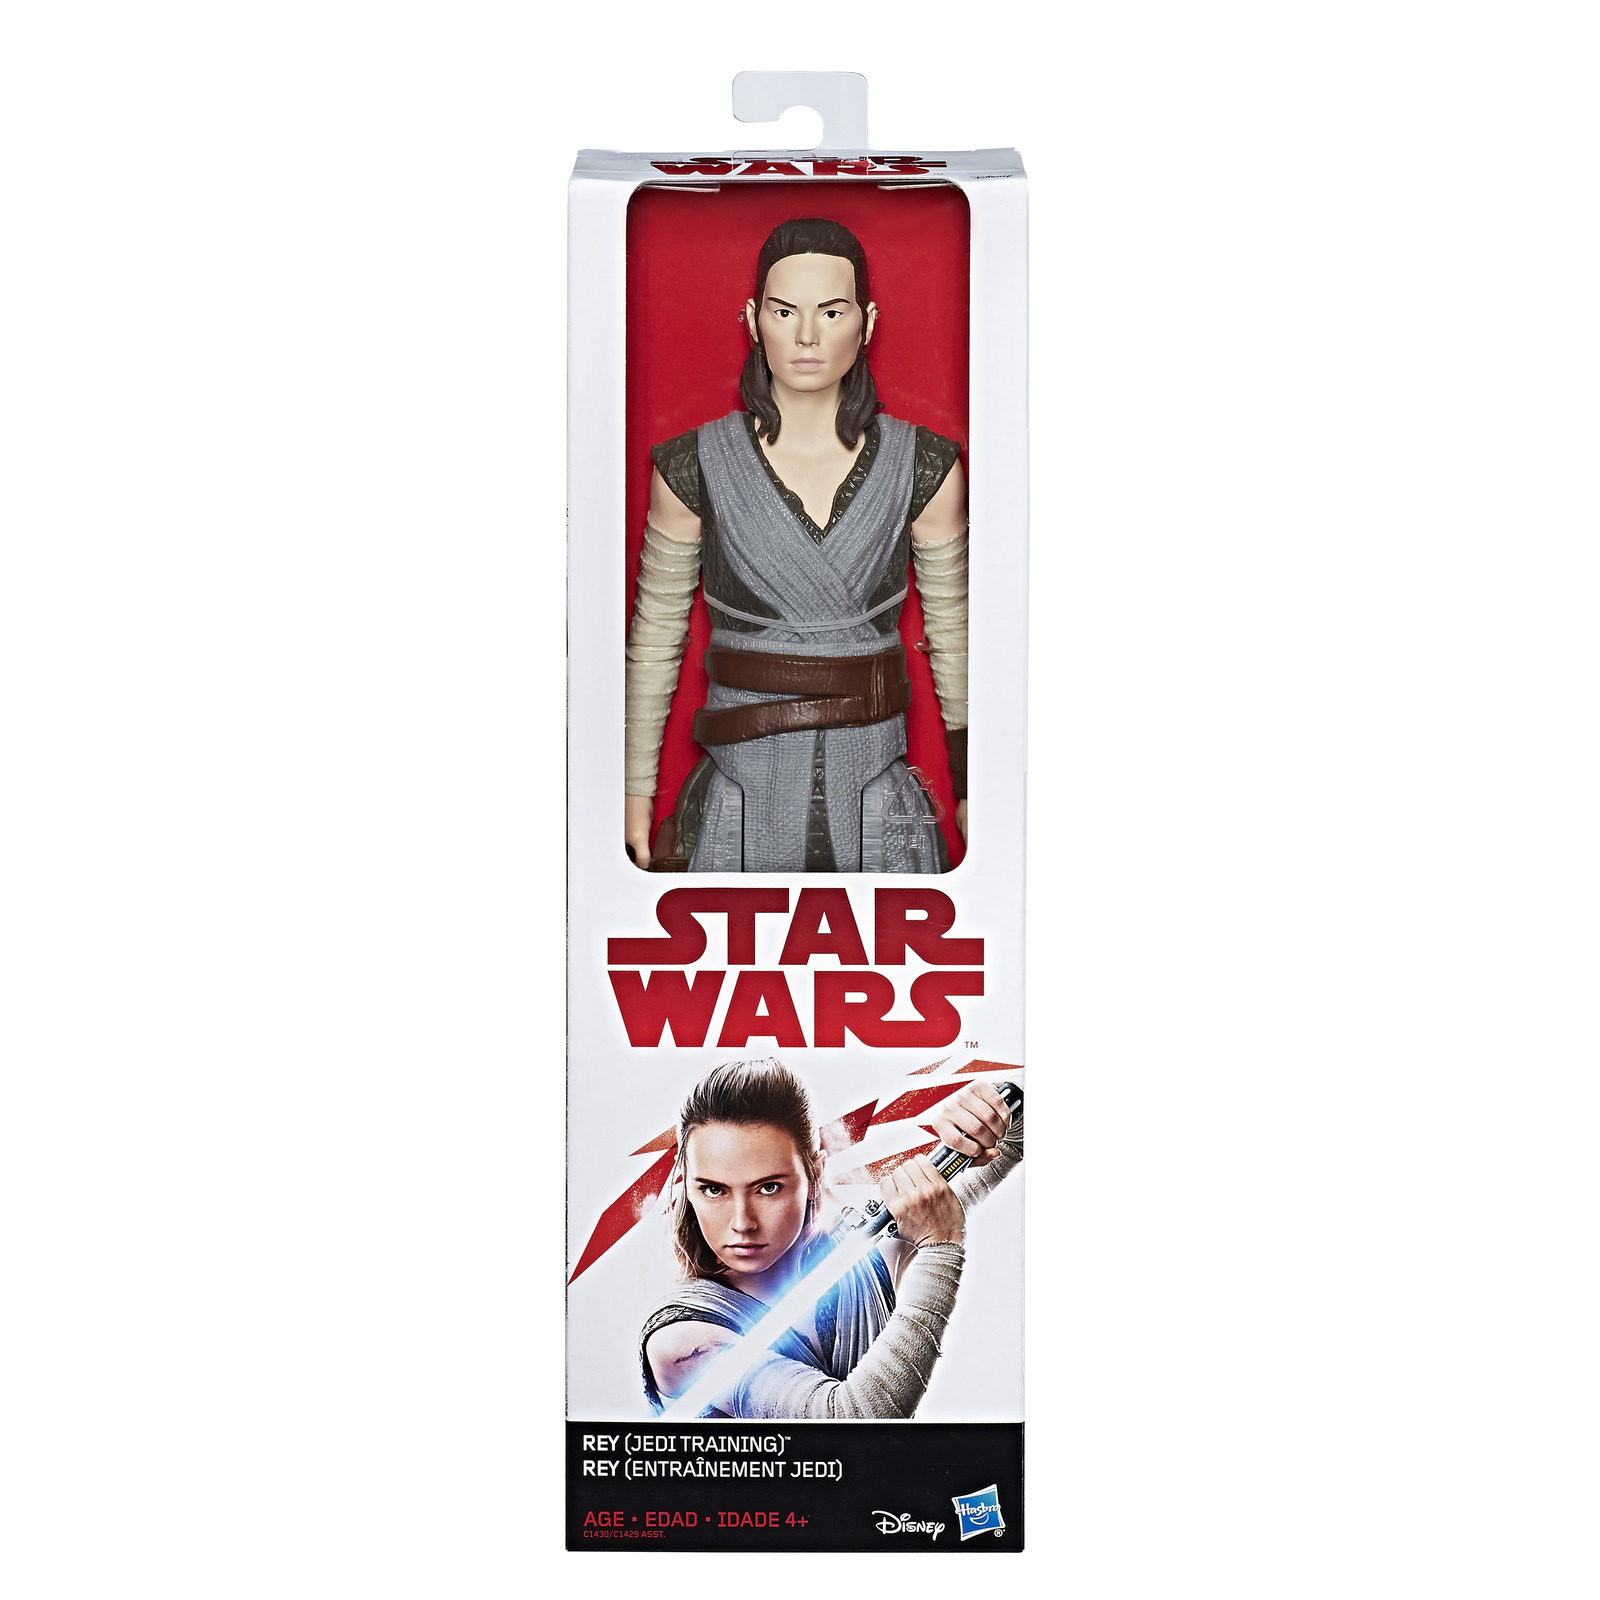 "Star Wars: The Last Jedi 12"" Figure - Rey (Jedi Training) image"